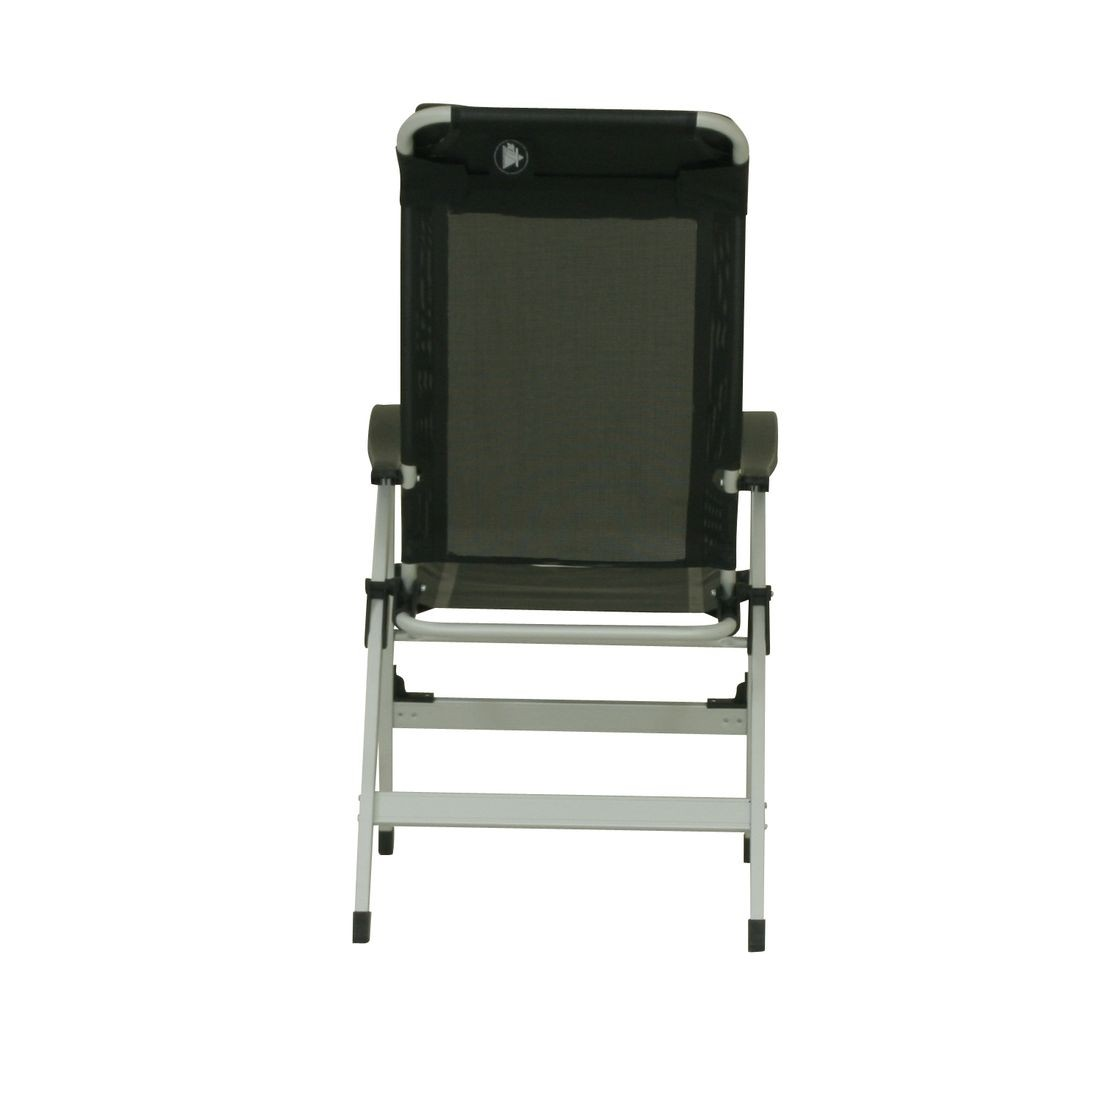 easy chairs with integral footrest folding chair black 10t easychair aluminium camping high back incl